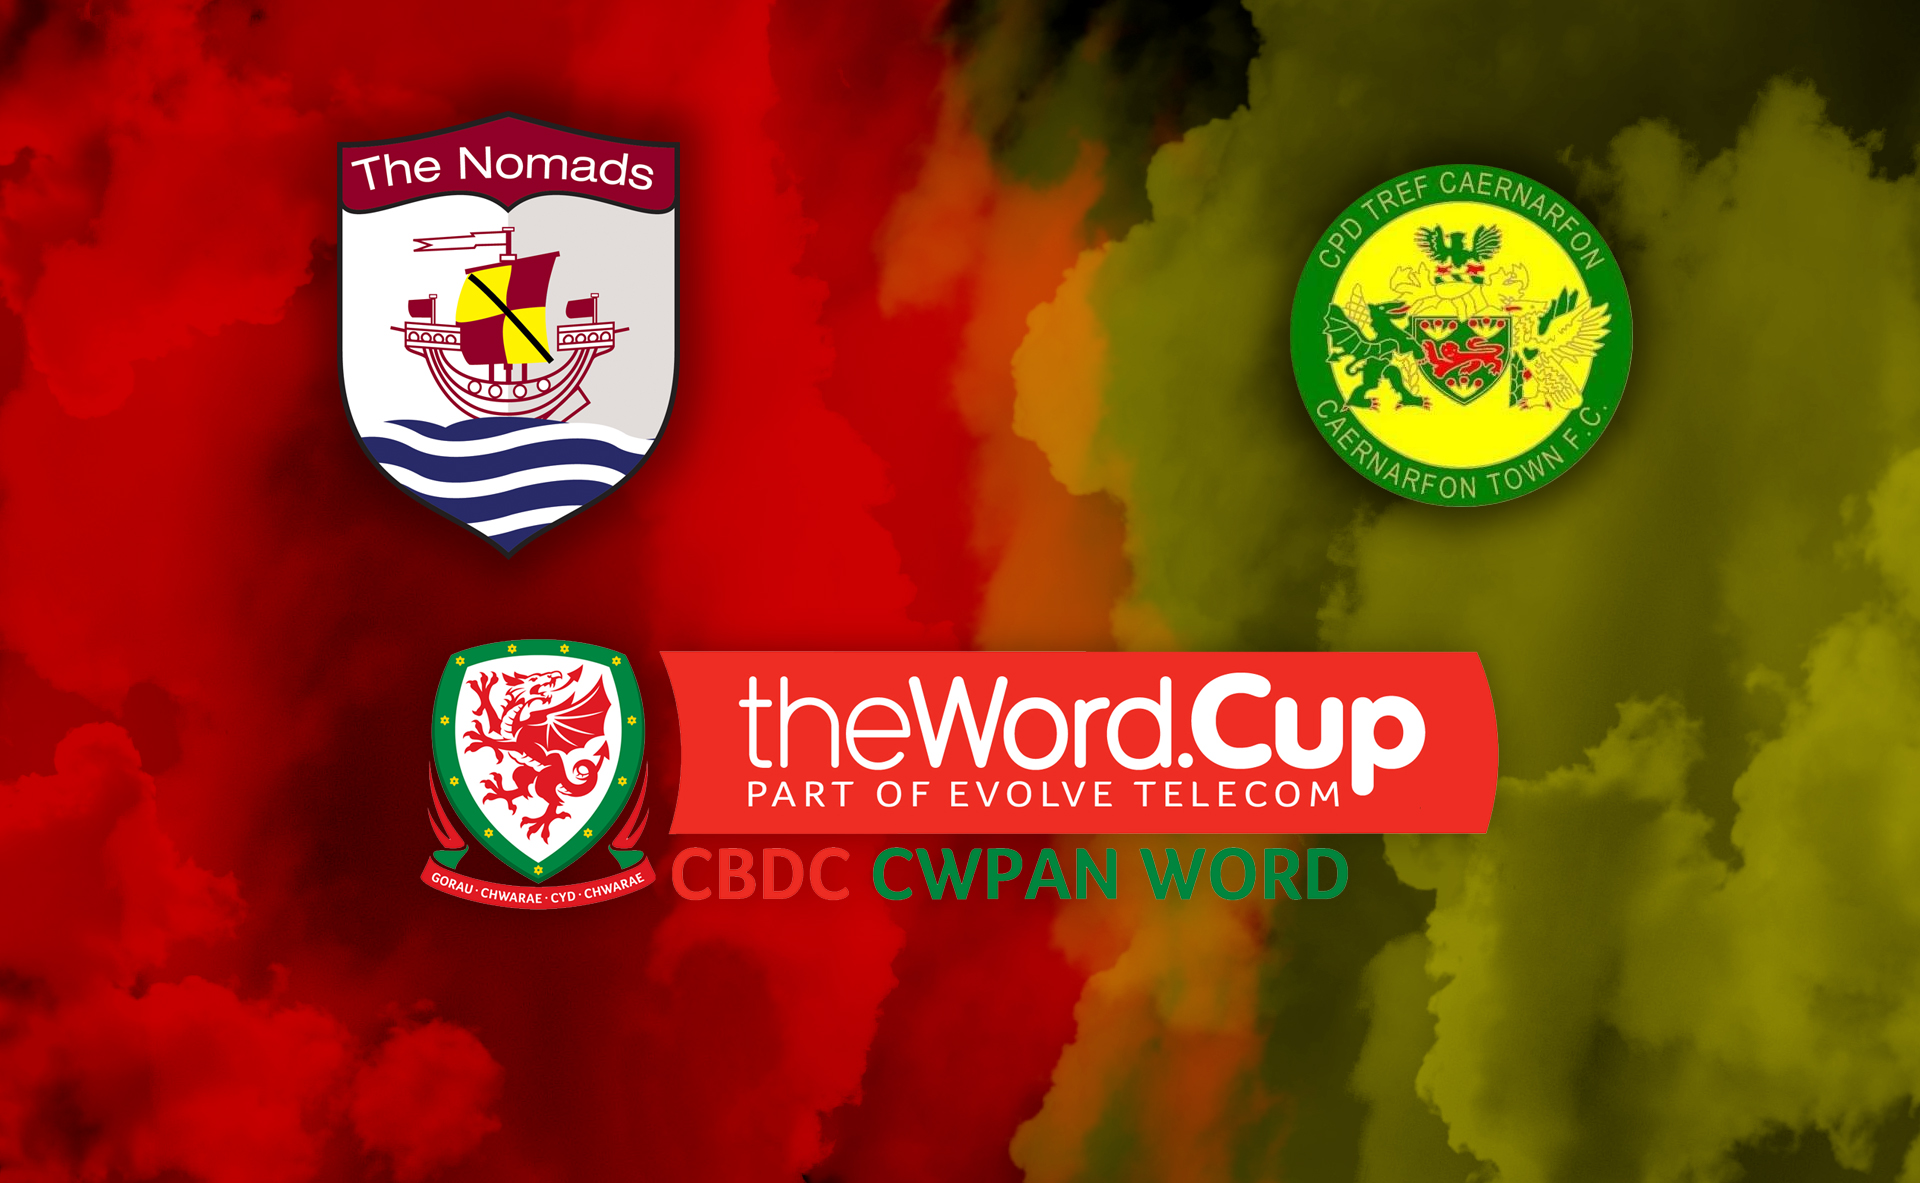 Home tie for Nomads in theWord Cup